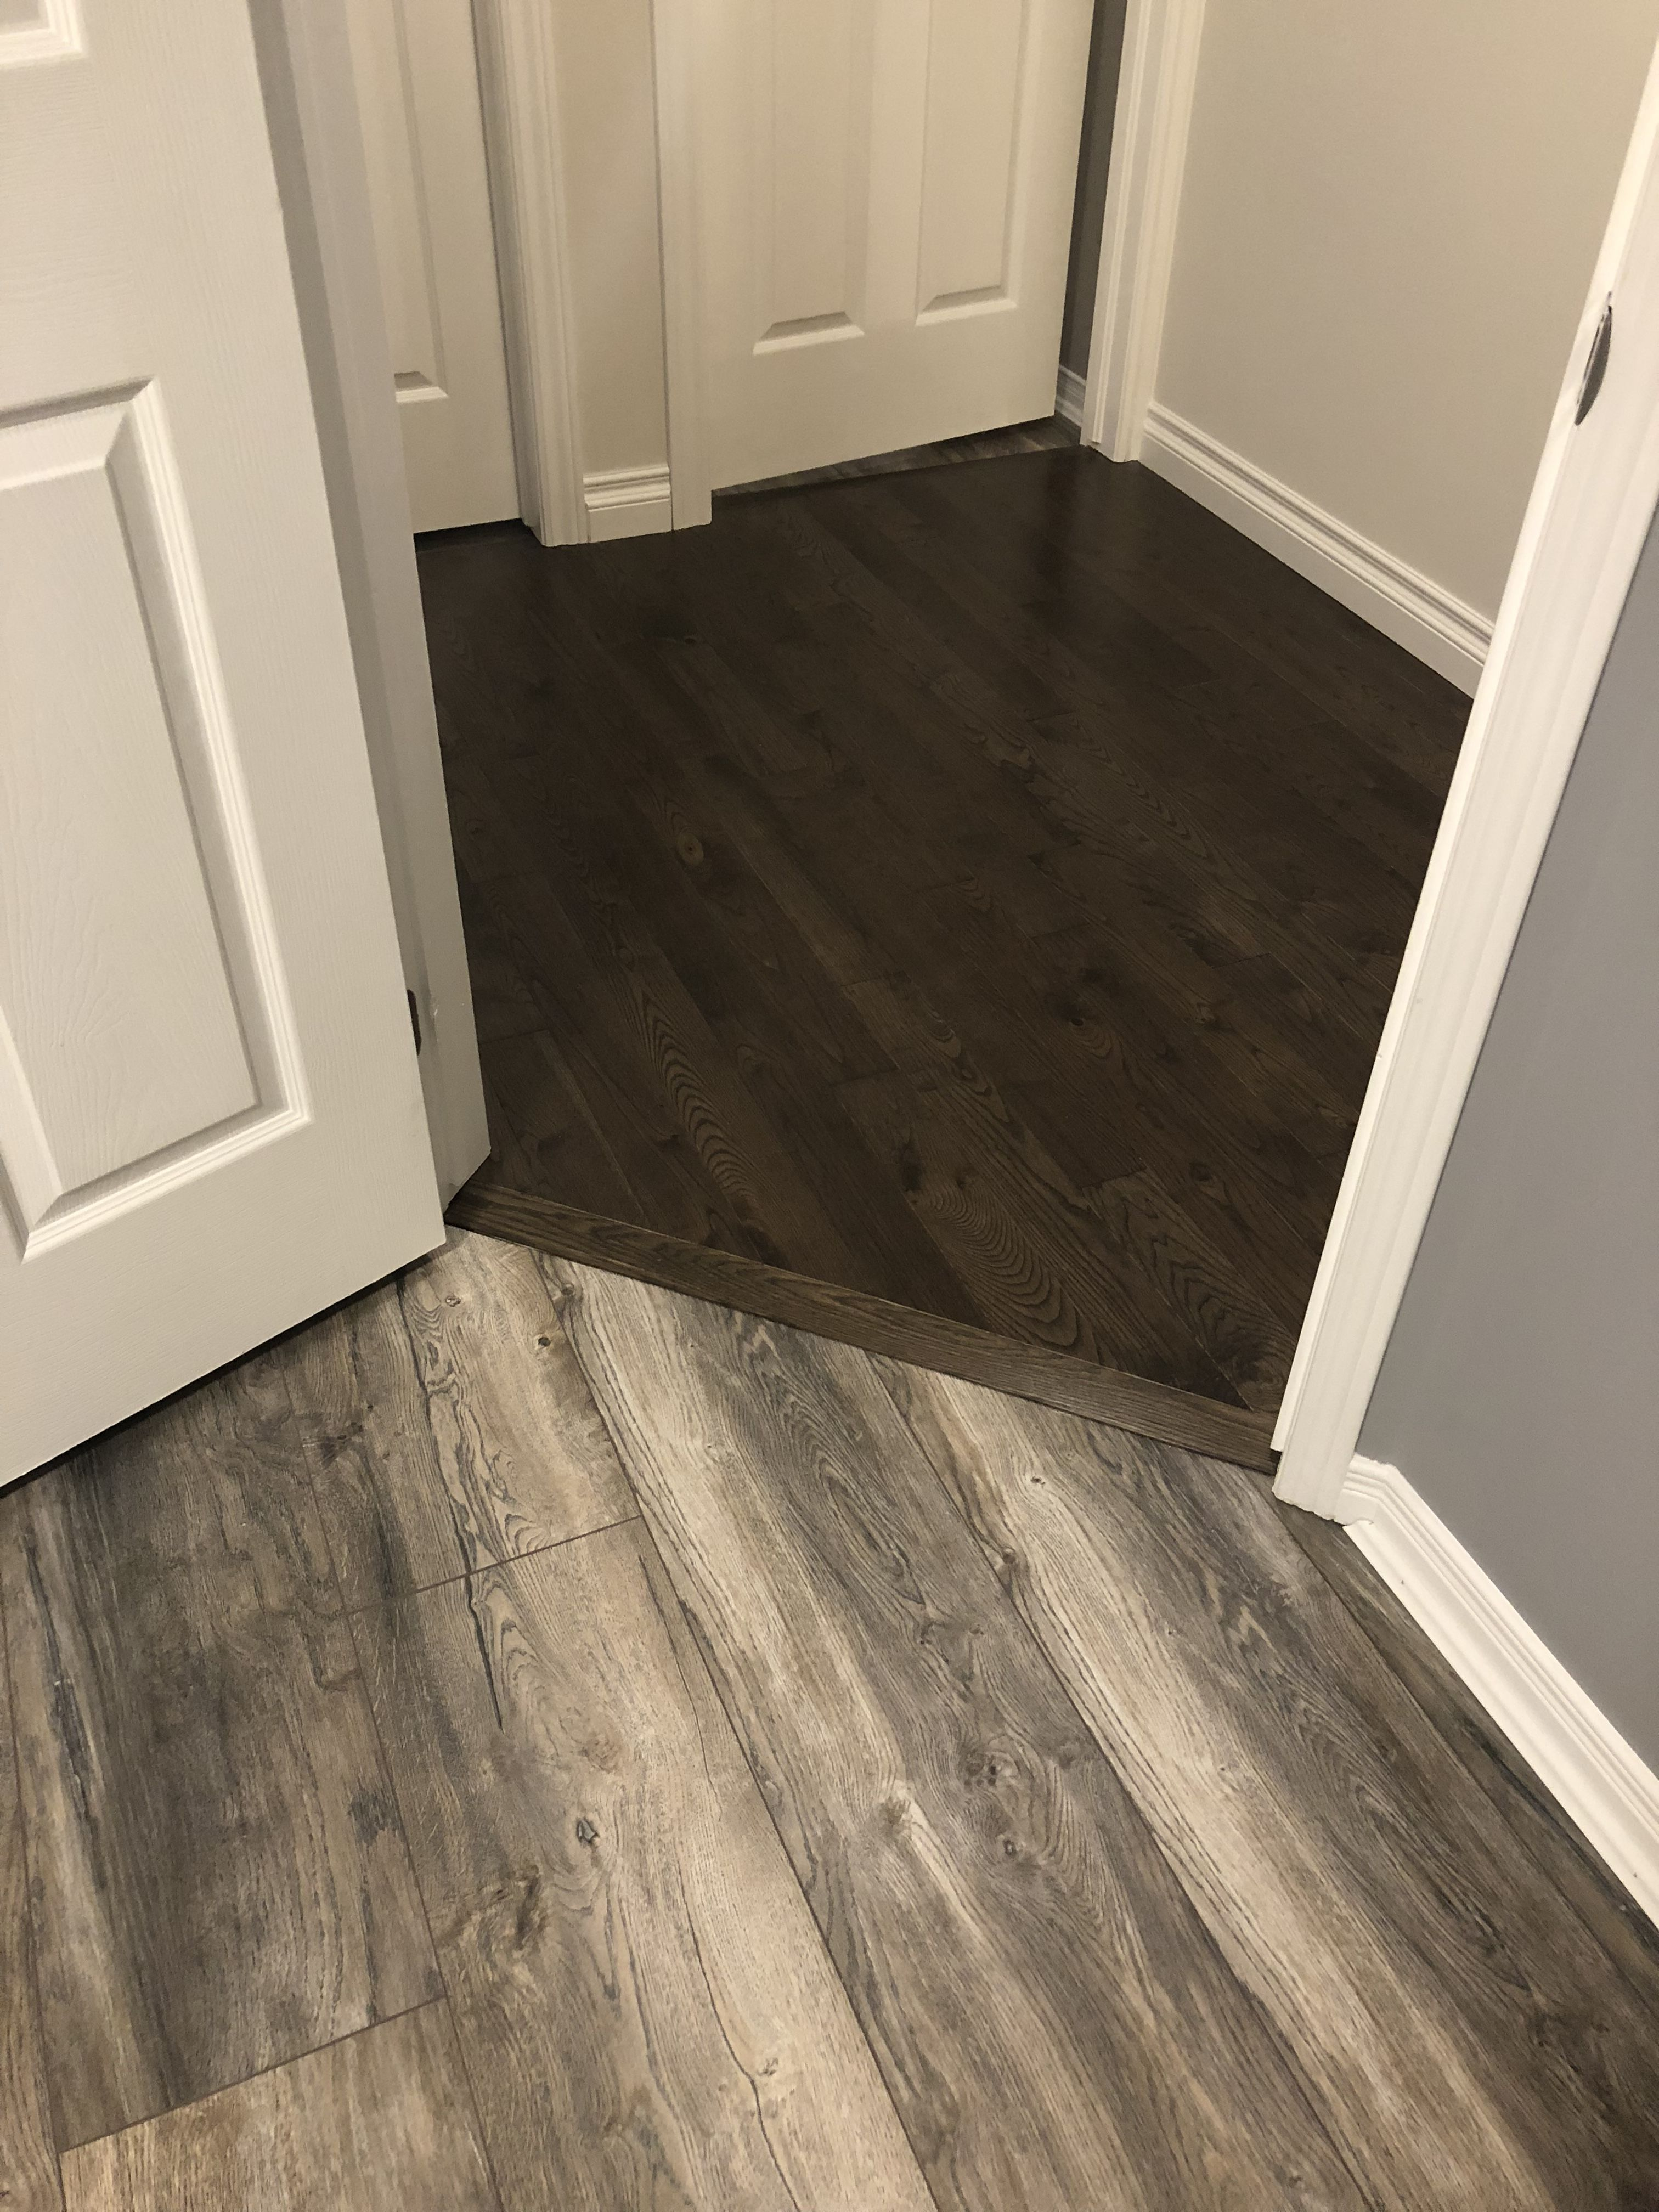 All Wood Floors Are Protected By A Clear Coating That Eventually Becomes Scratched Scuffed And Dull Hardwood Floor Refinishing Can Help You Get Rid Of